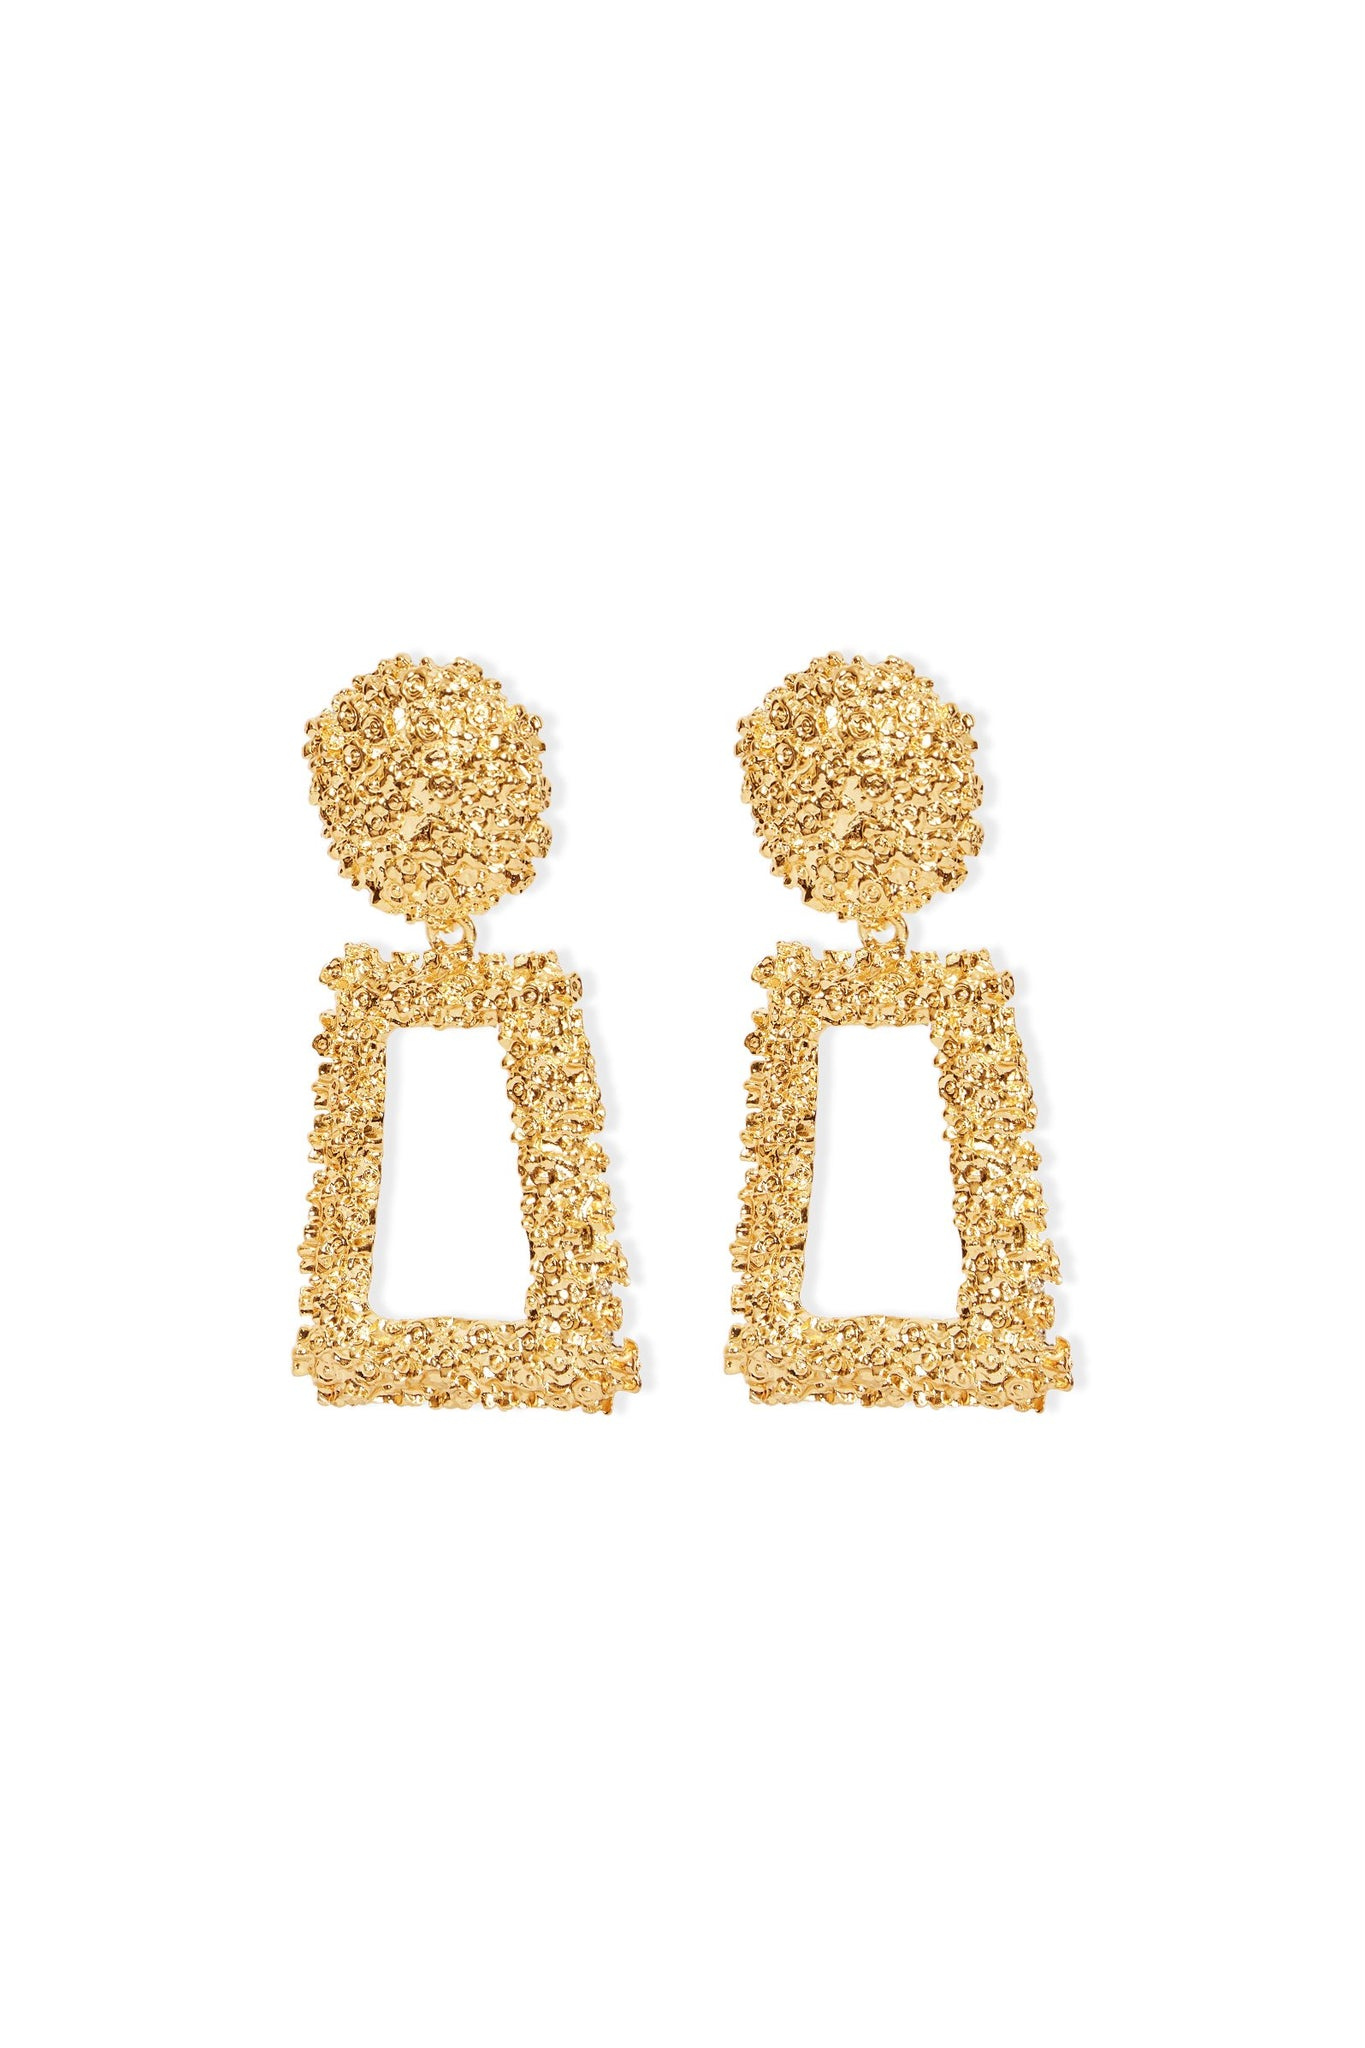 Alanis Gold Statement Earrings - Gold - MESHKI